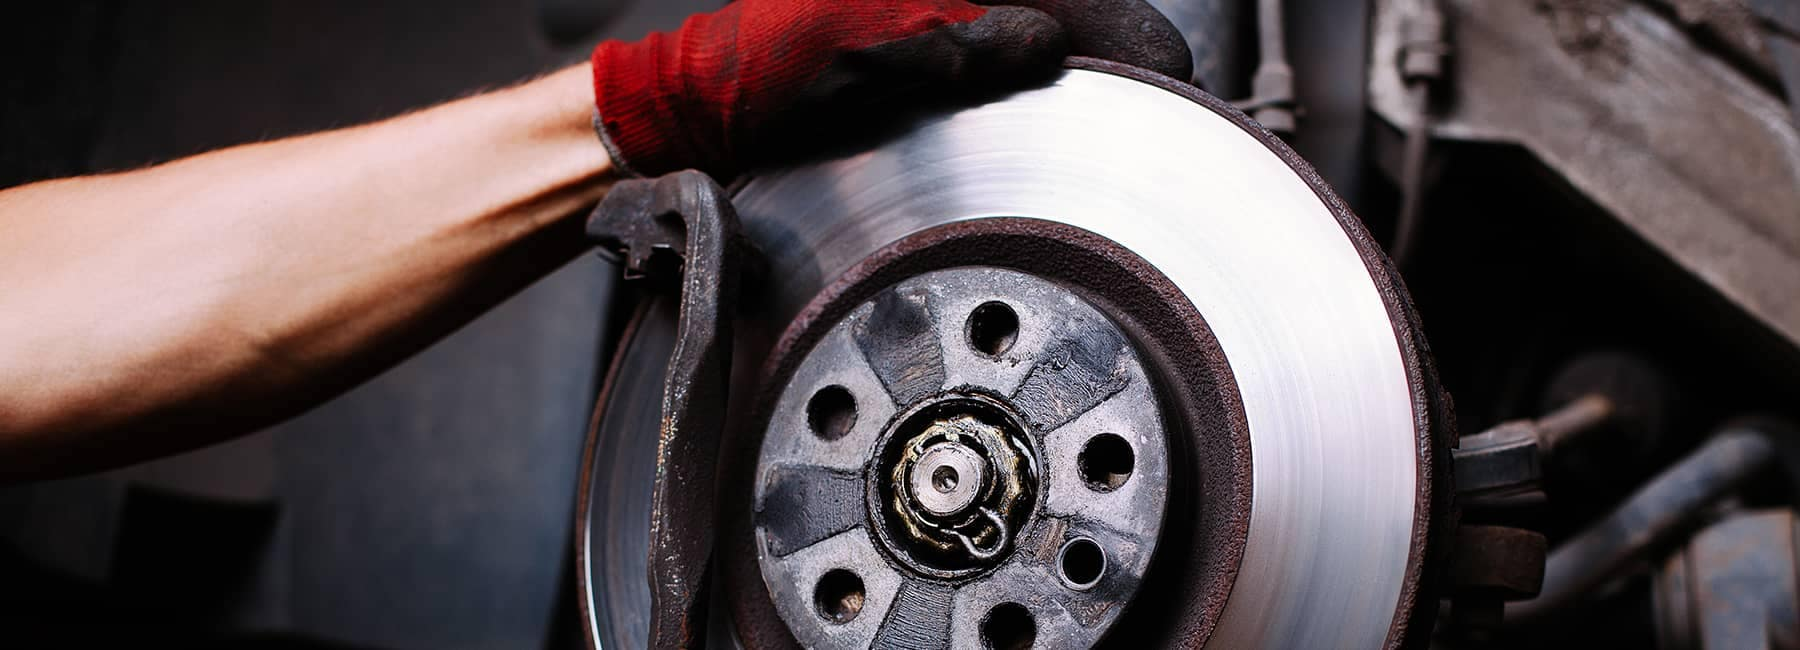 close up of service technician replacing brake rotors on vehicle